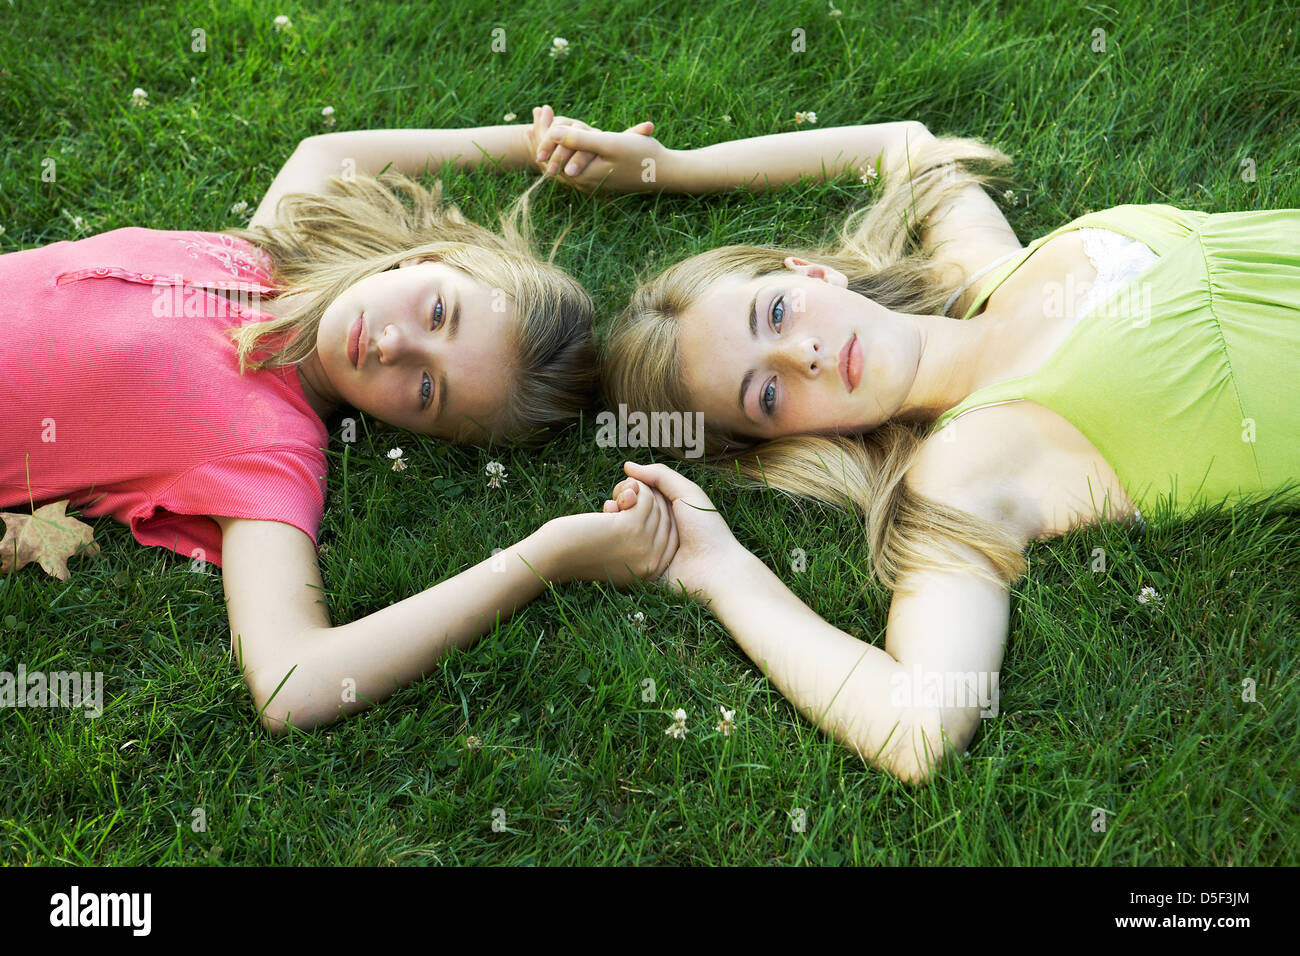 Belle teen et tween sisters holding hands Photo Stock